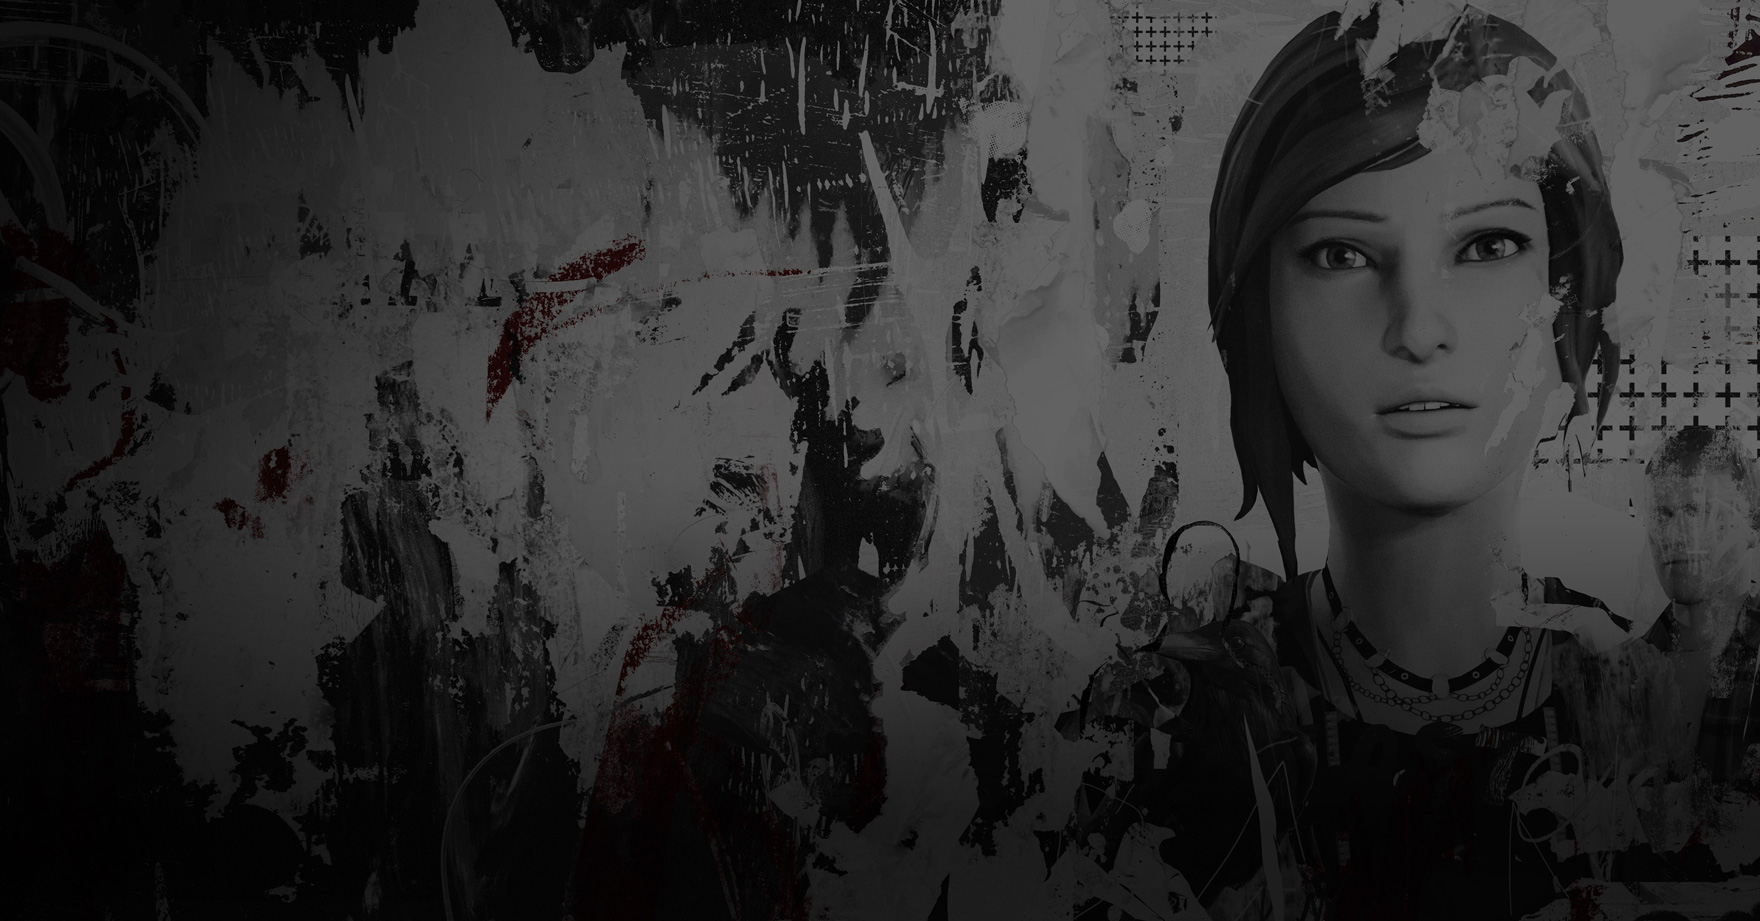 Life Is Strange Before The Storm Wallpaper: Image - Before The Storm Wallpaper.jpg